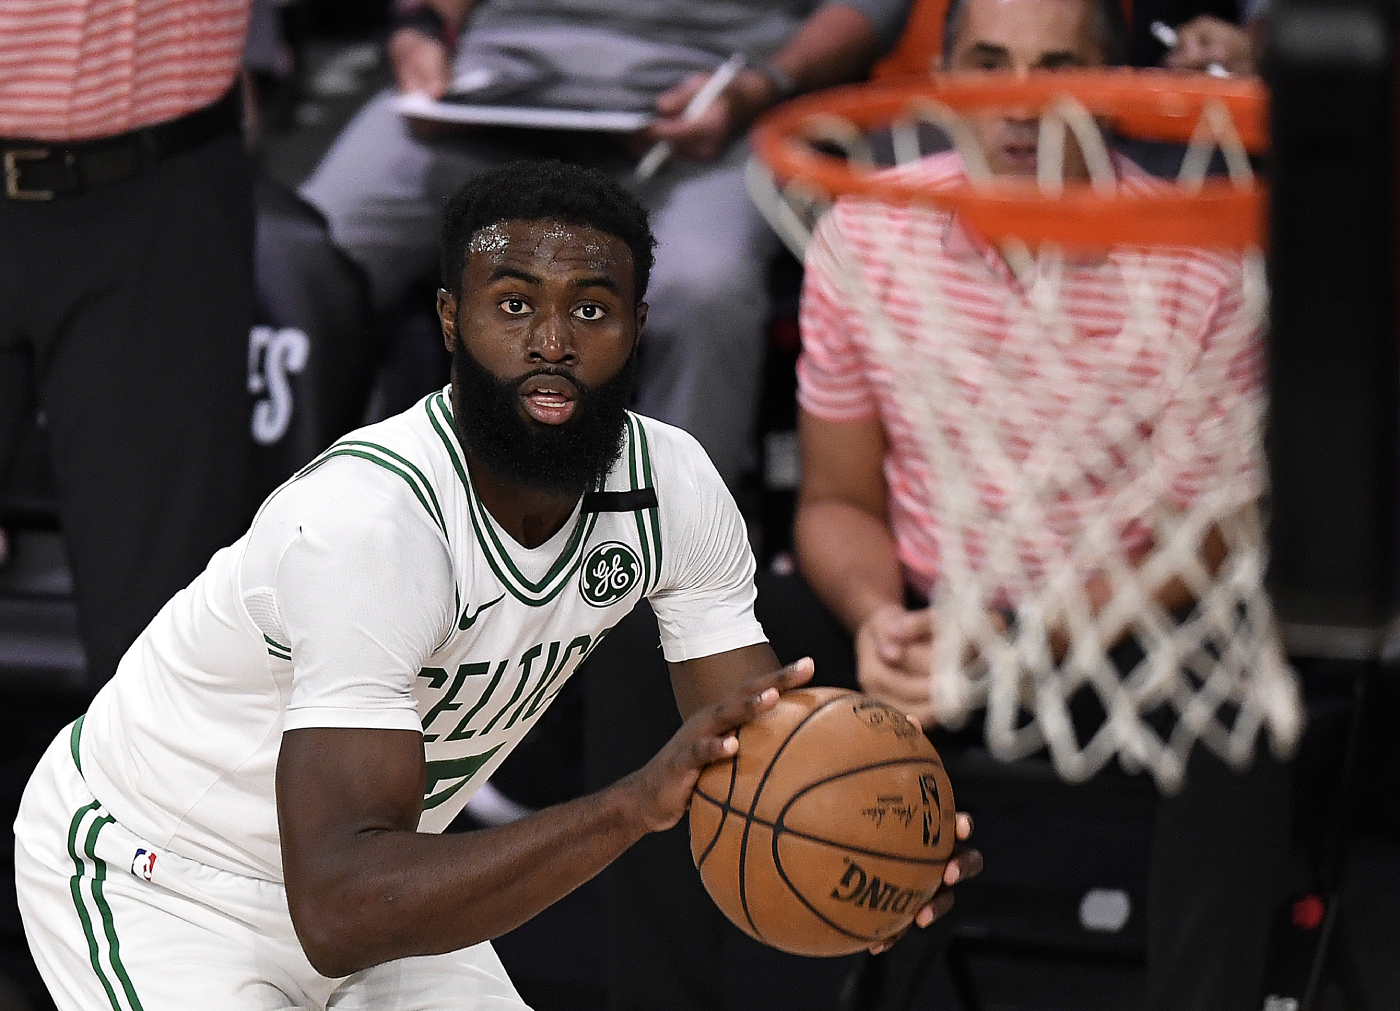 Jaylen Brown has become a star for the Boston Celtics. He just recently sent a powerful message to the entire city of Boston.